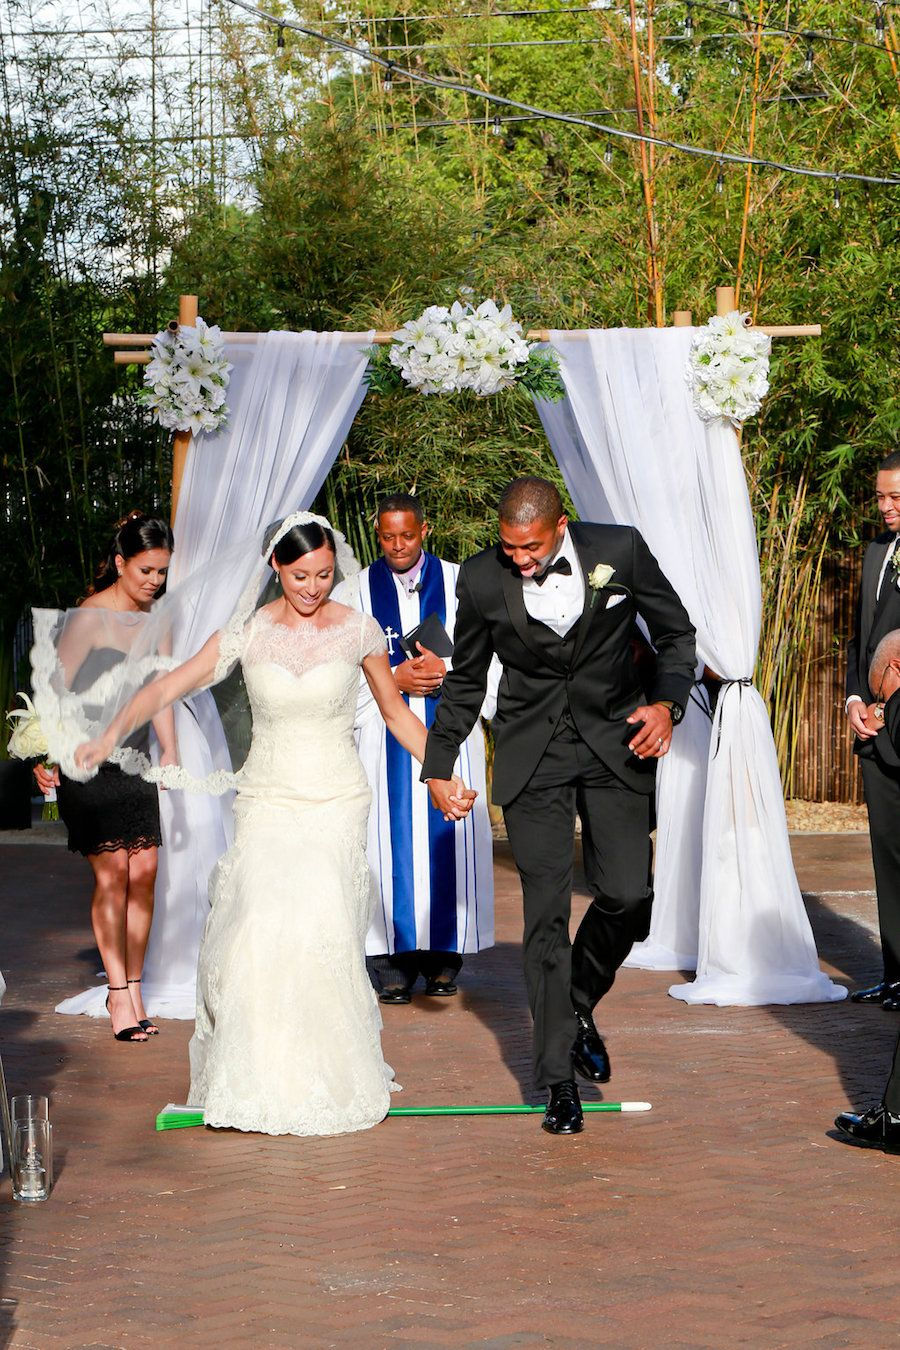 Bride and Groom Jumping the Broom during Outdoor Wedding Ceremony in Bamboo Garden | Outdoor downtown St. Petersburg wedding Venue NOVA 535